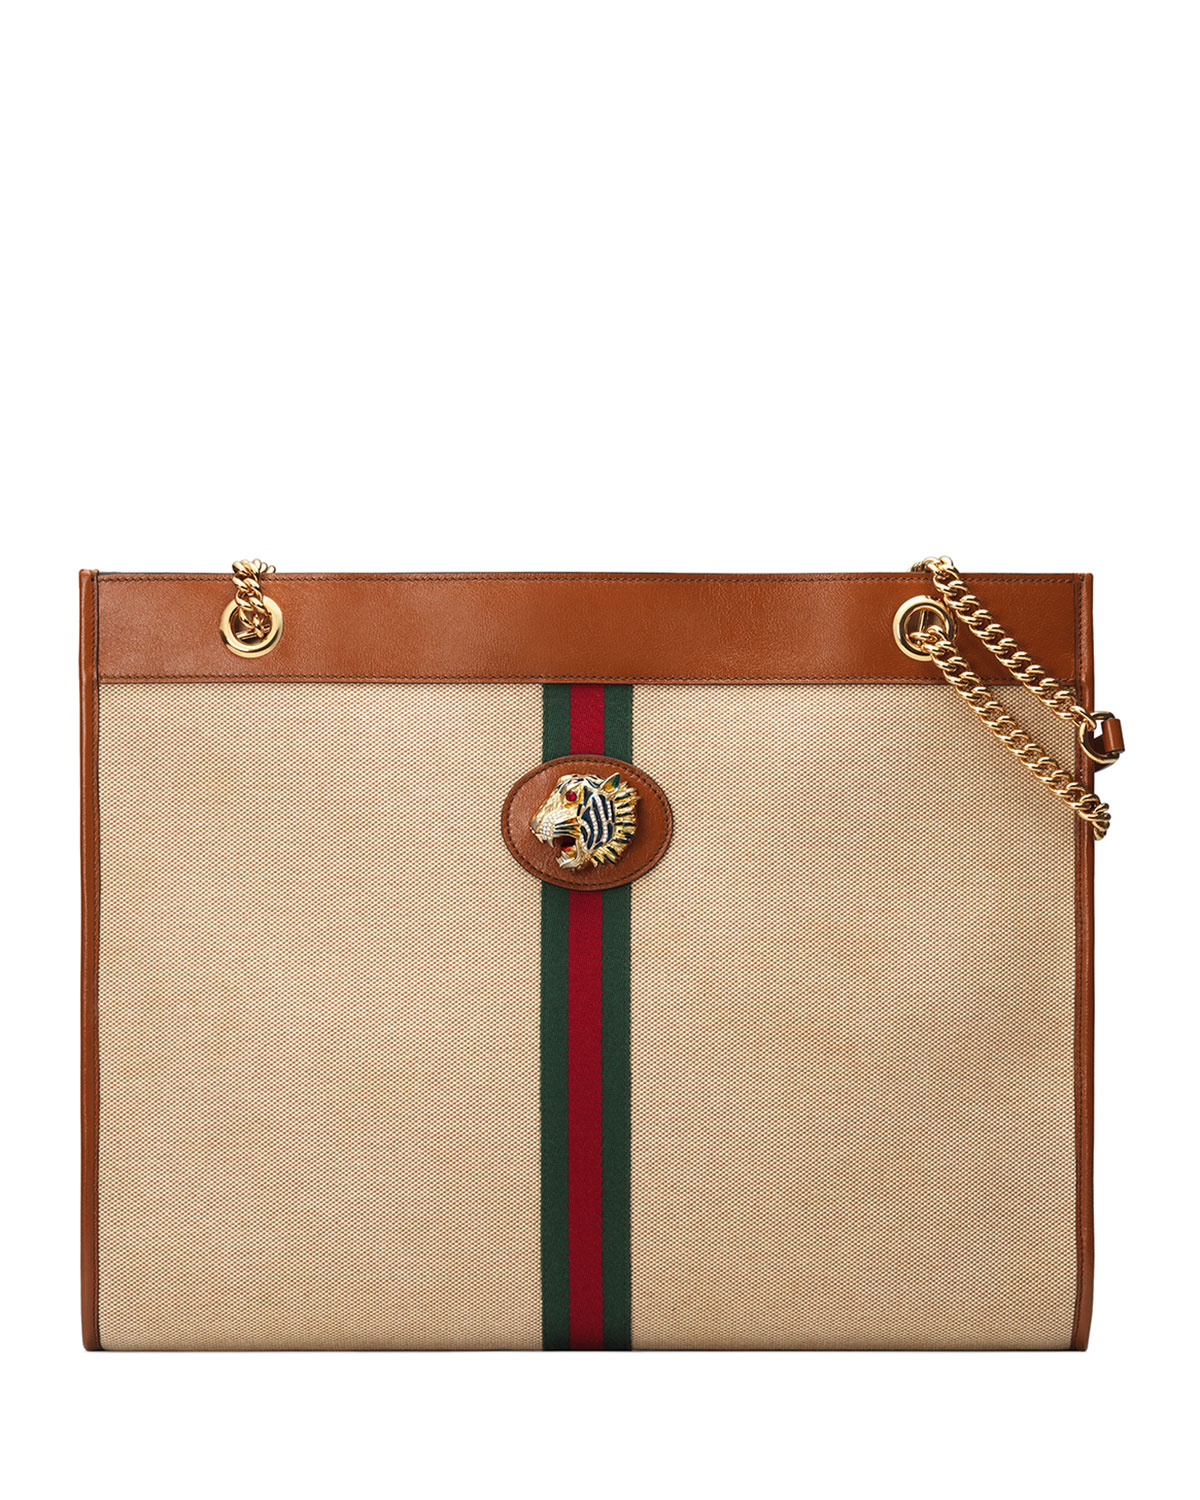 5bf89c00940e Gucci Rajah Large Canvas Tote Bag | Neiman Marcus